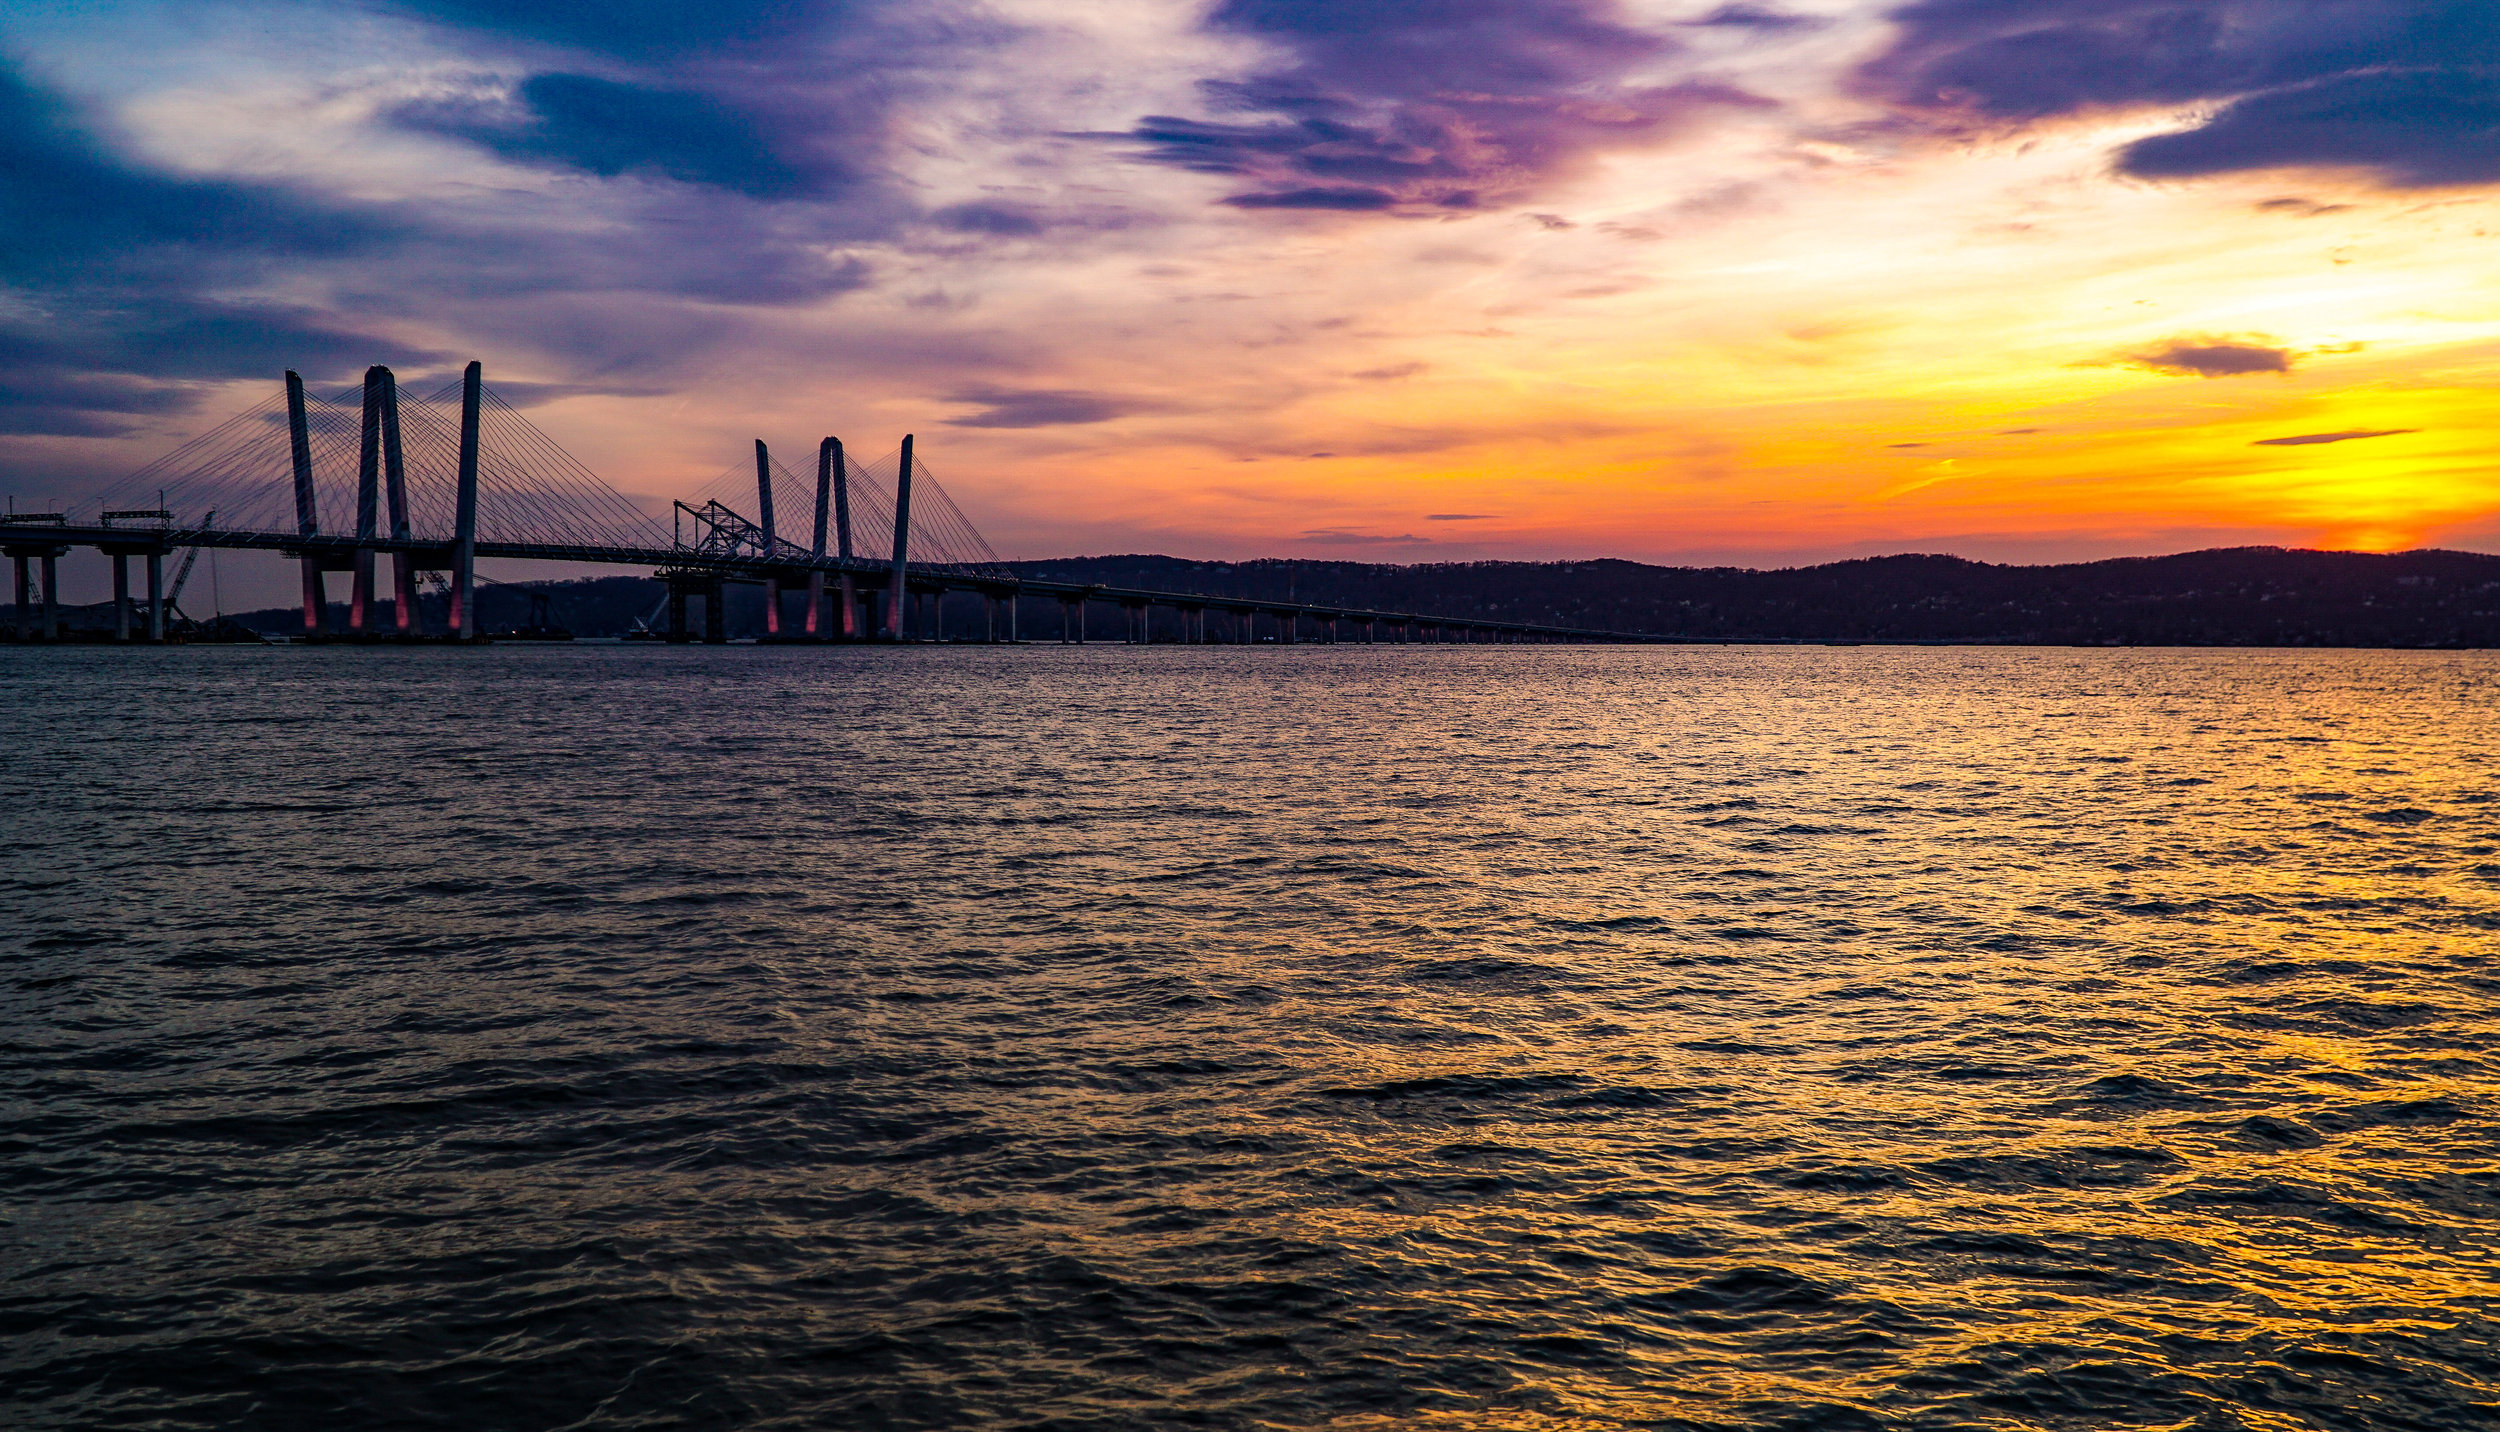 Tappan Zee Fire in the sky2.jpg